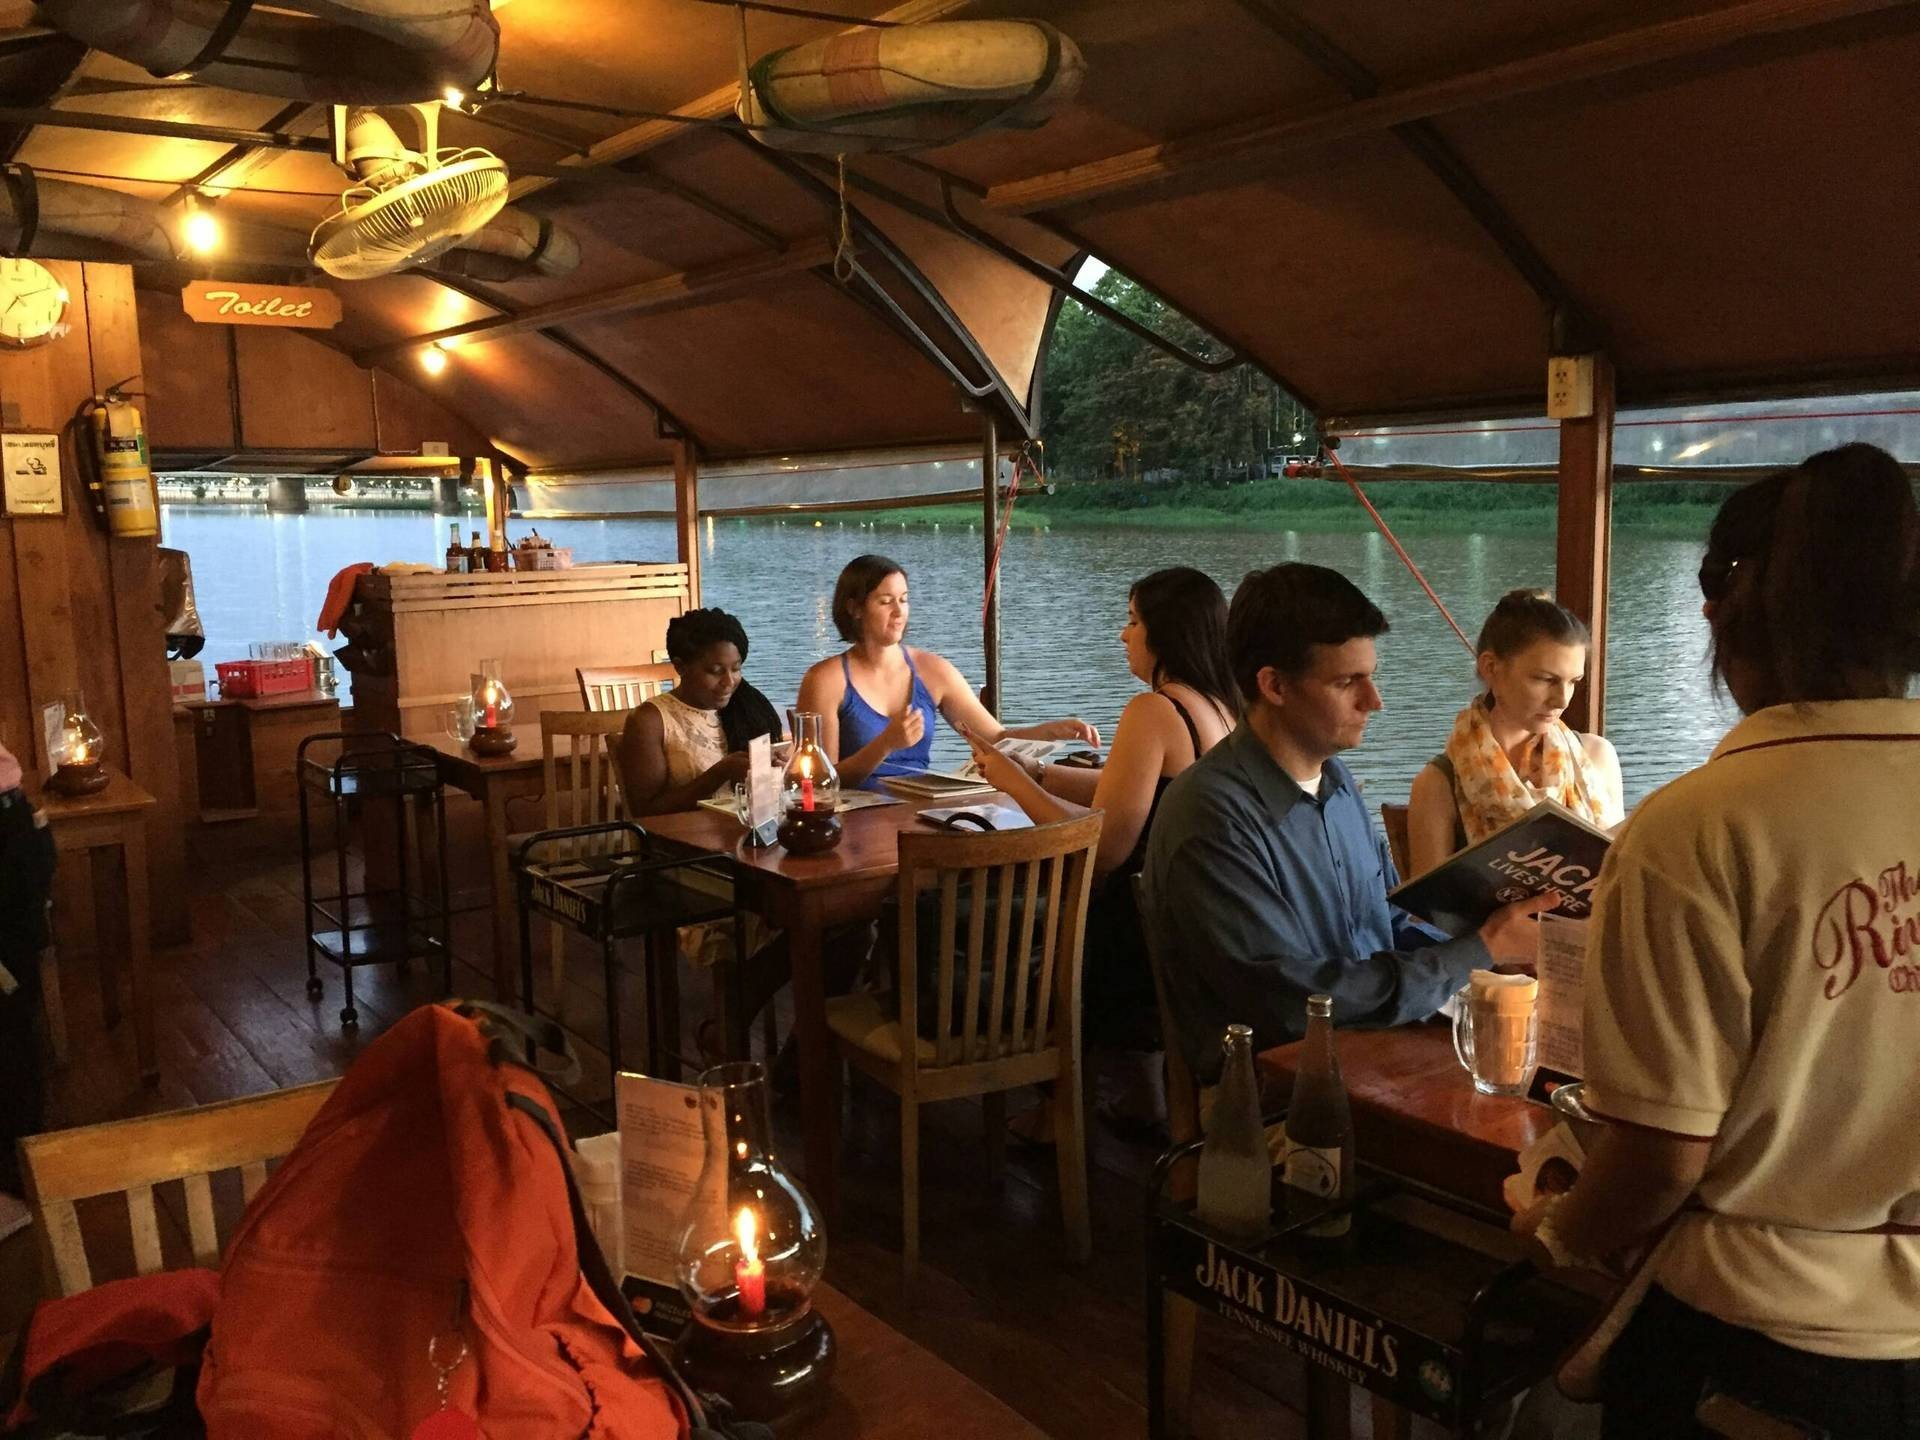 The Riverside Bar & Restaurant @ Chiang Mai